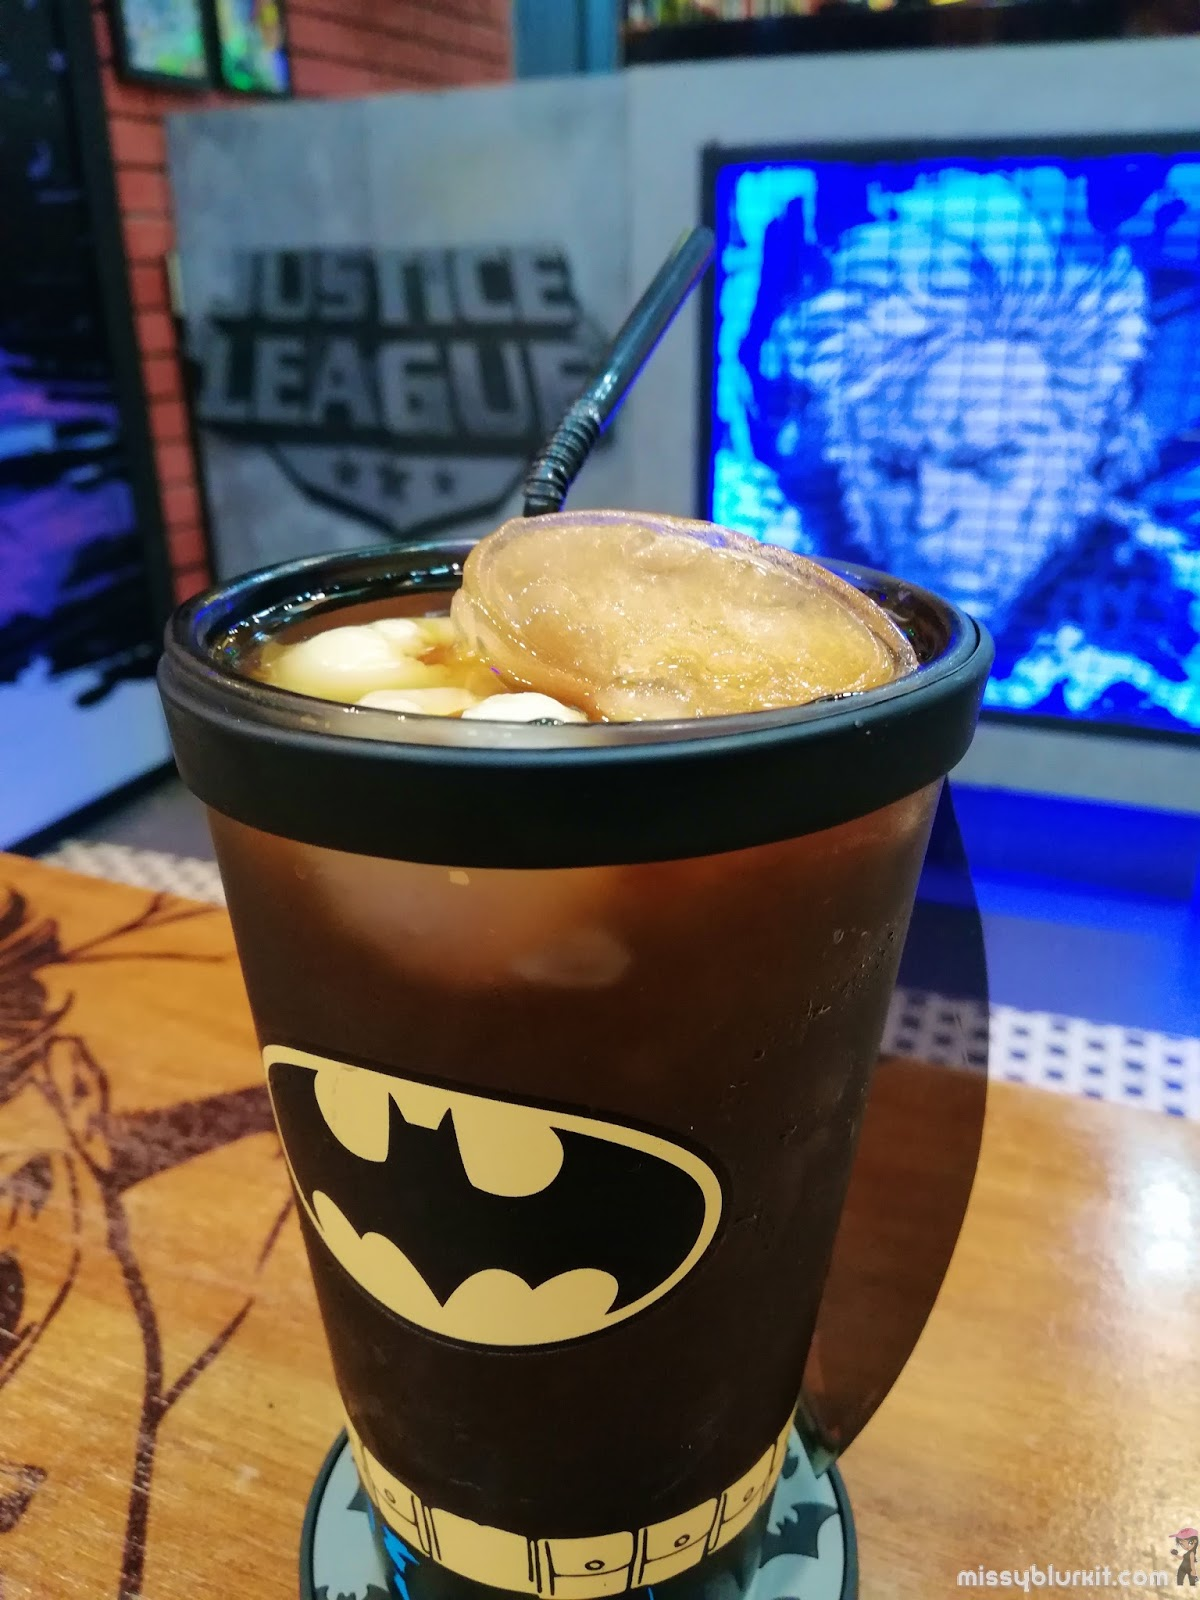 Justice League @ DC Cafe